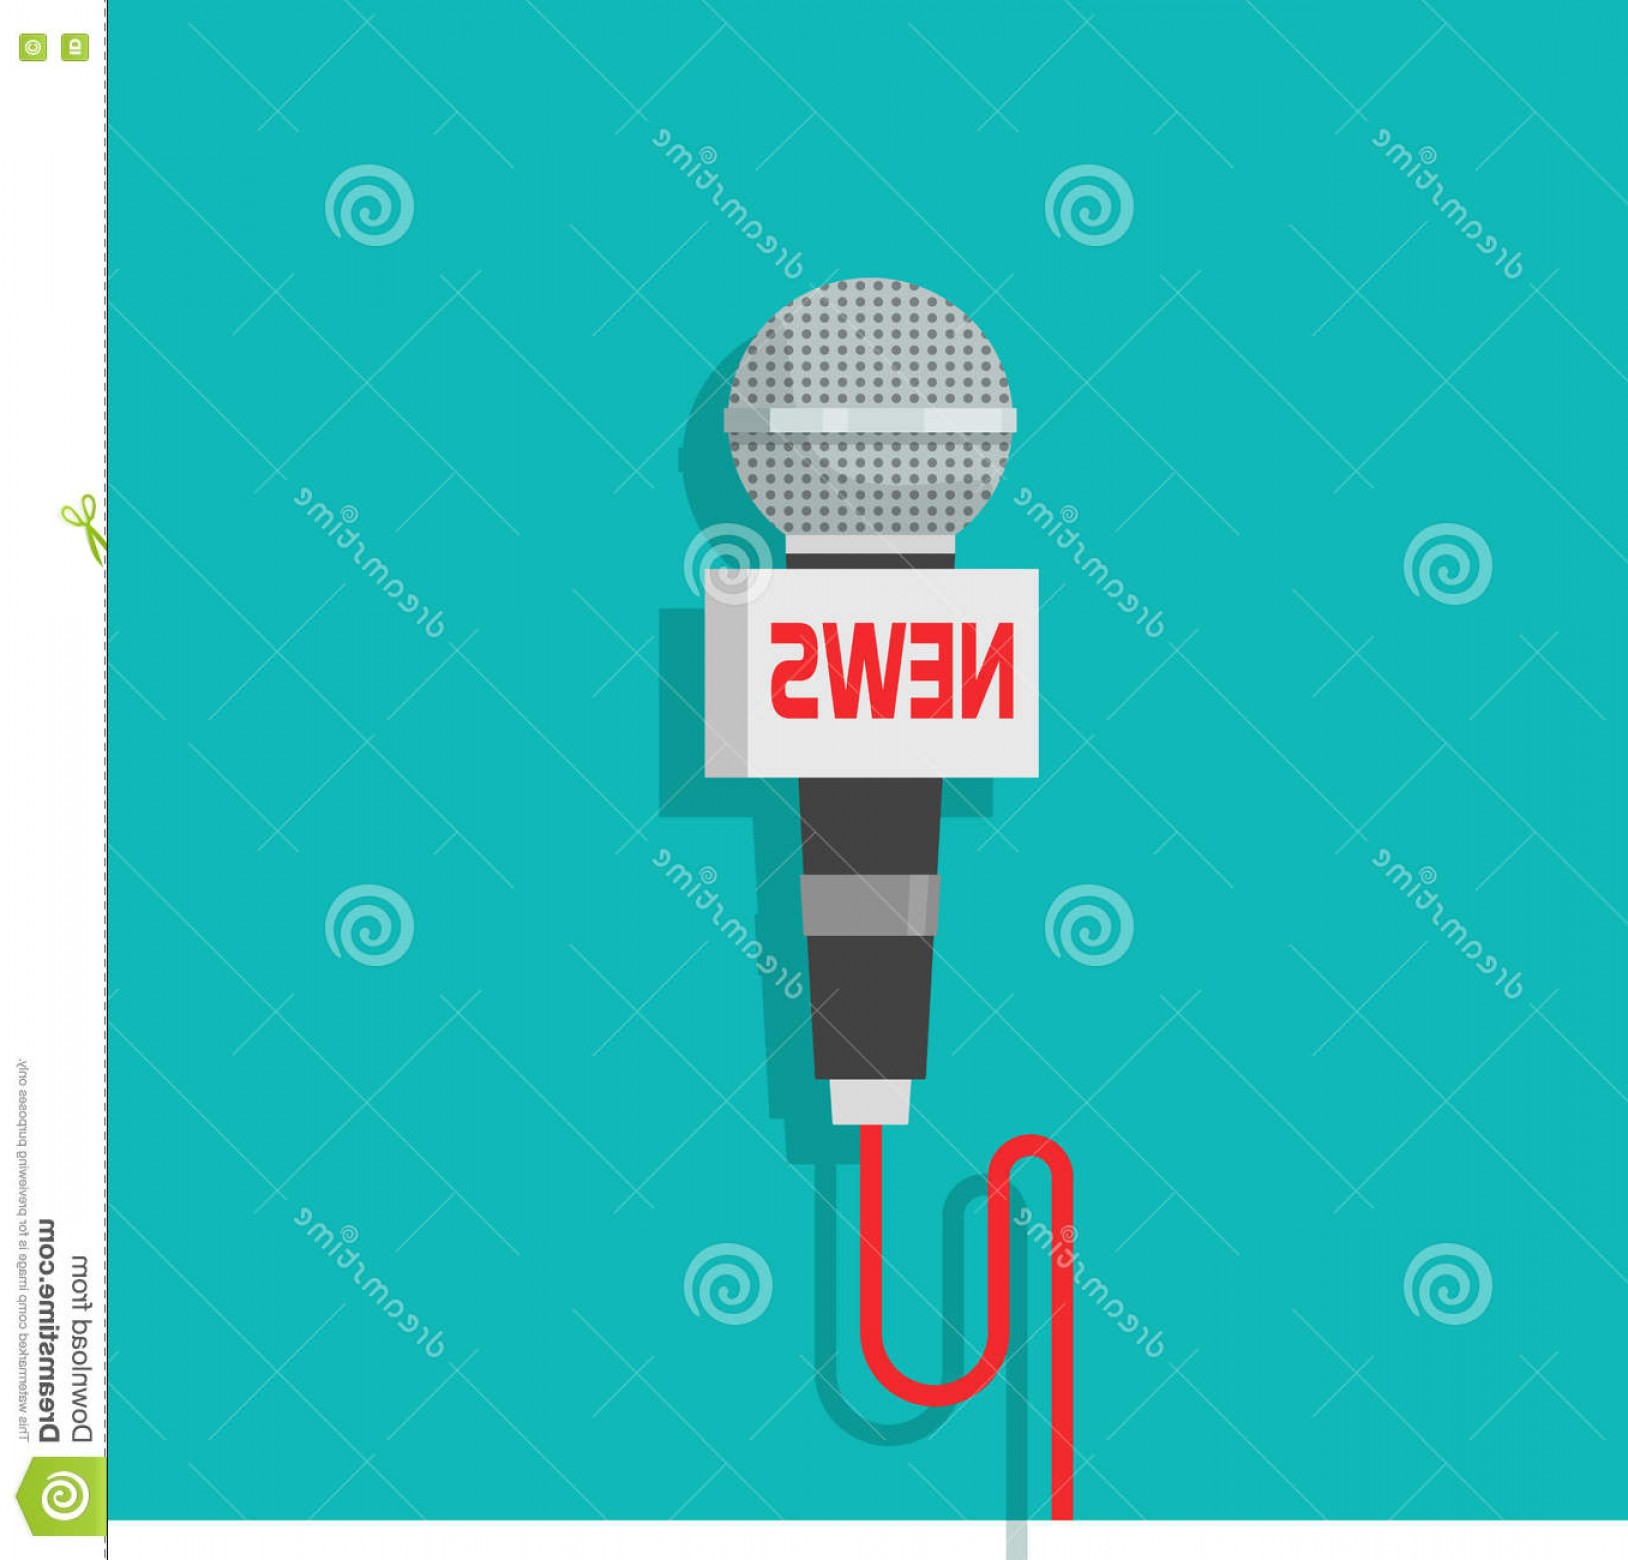 News Microphone Icon Vector: Stock Illustration Microphone Vector Icon Isolated Blue Color Background Flat Mic News Text Image